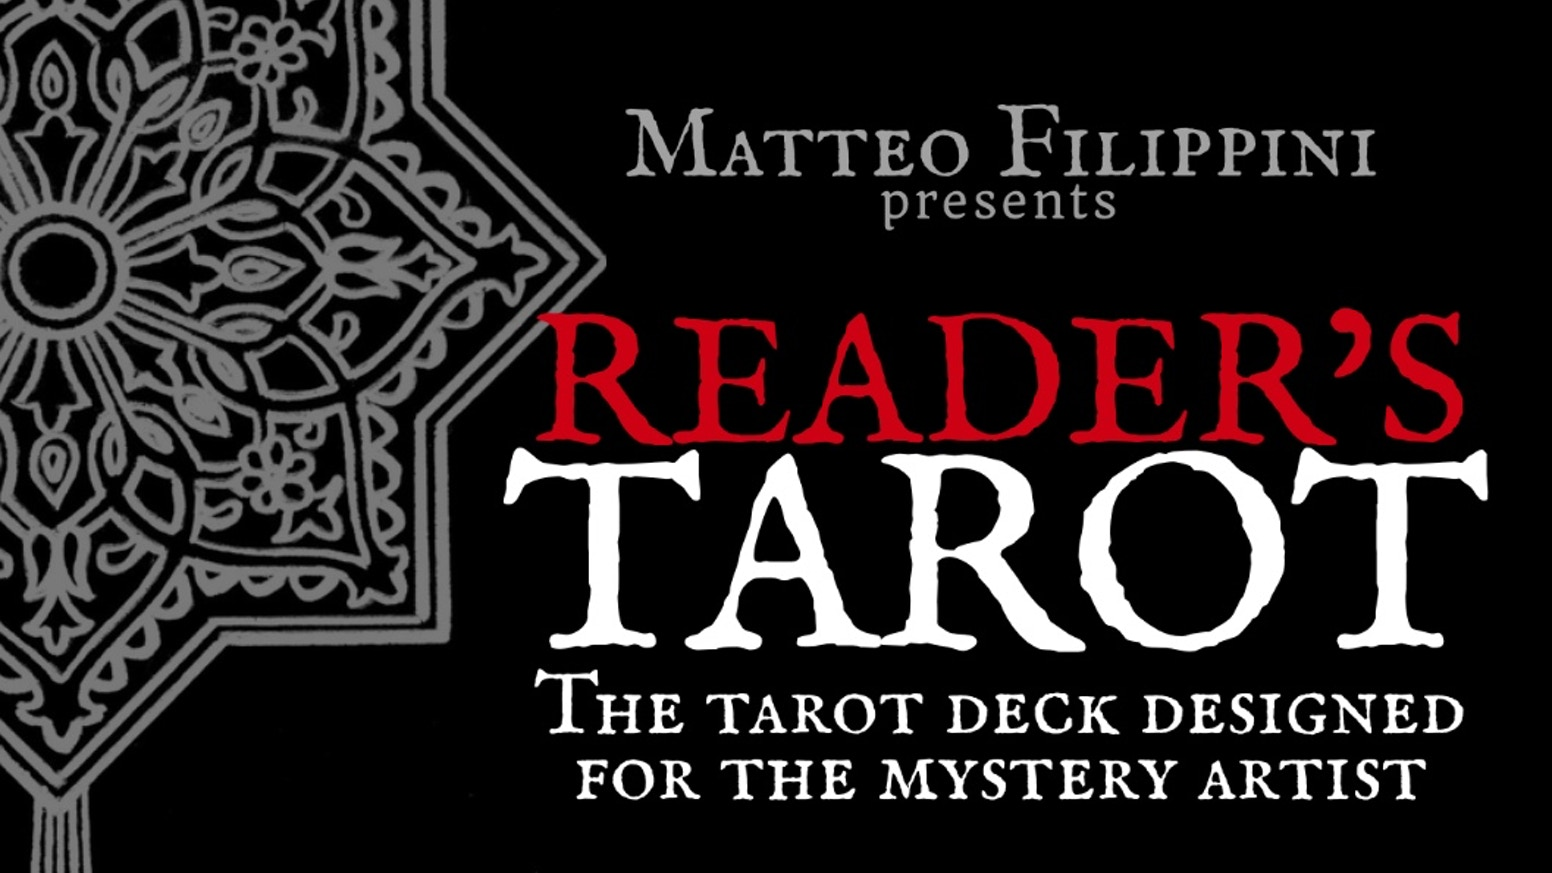 The Reader's Tarot Deck is the perfect deck for mentalists, magicians, readers and any other mystery artist!